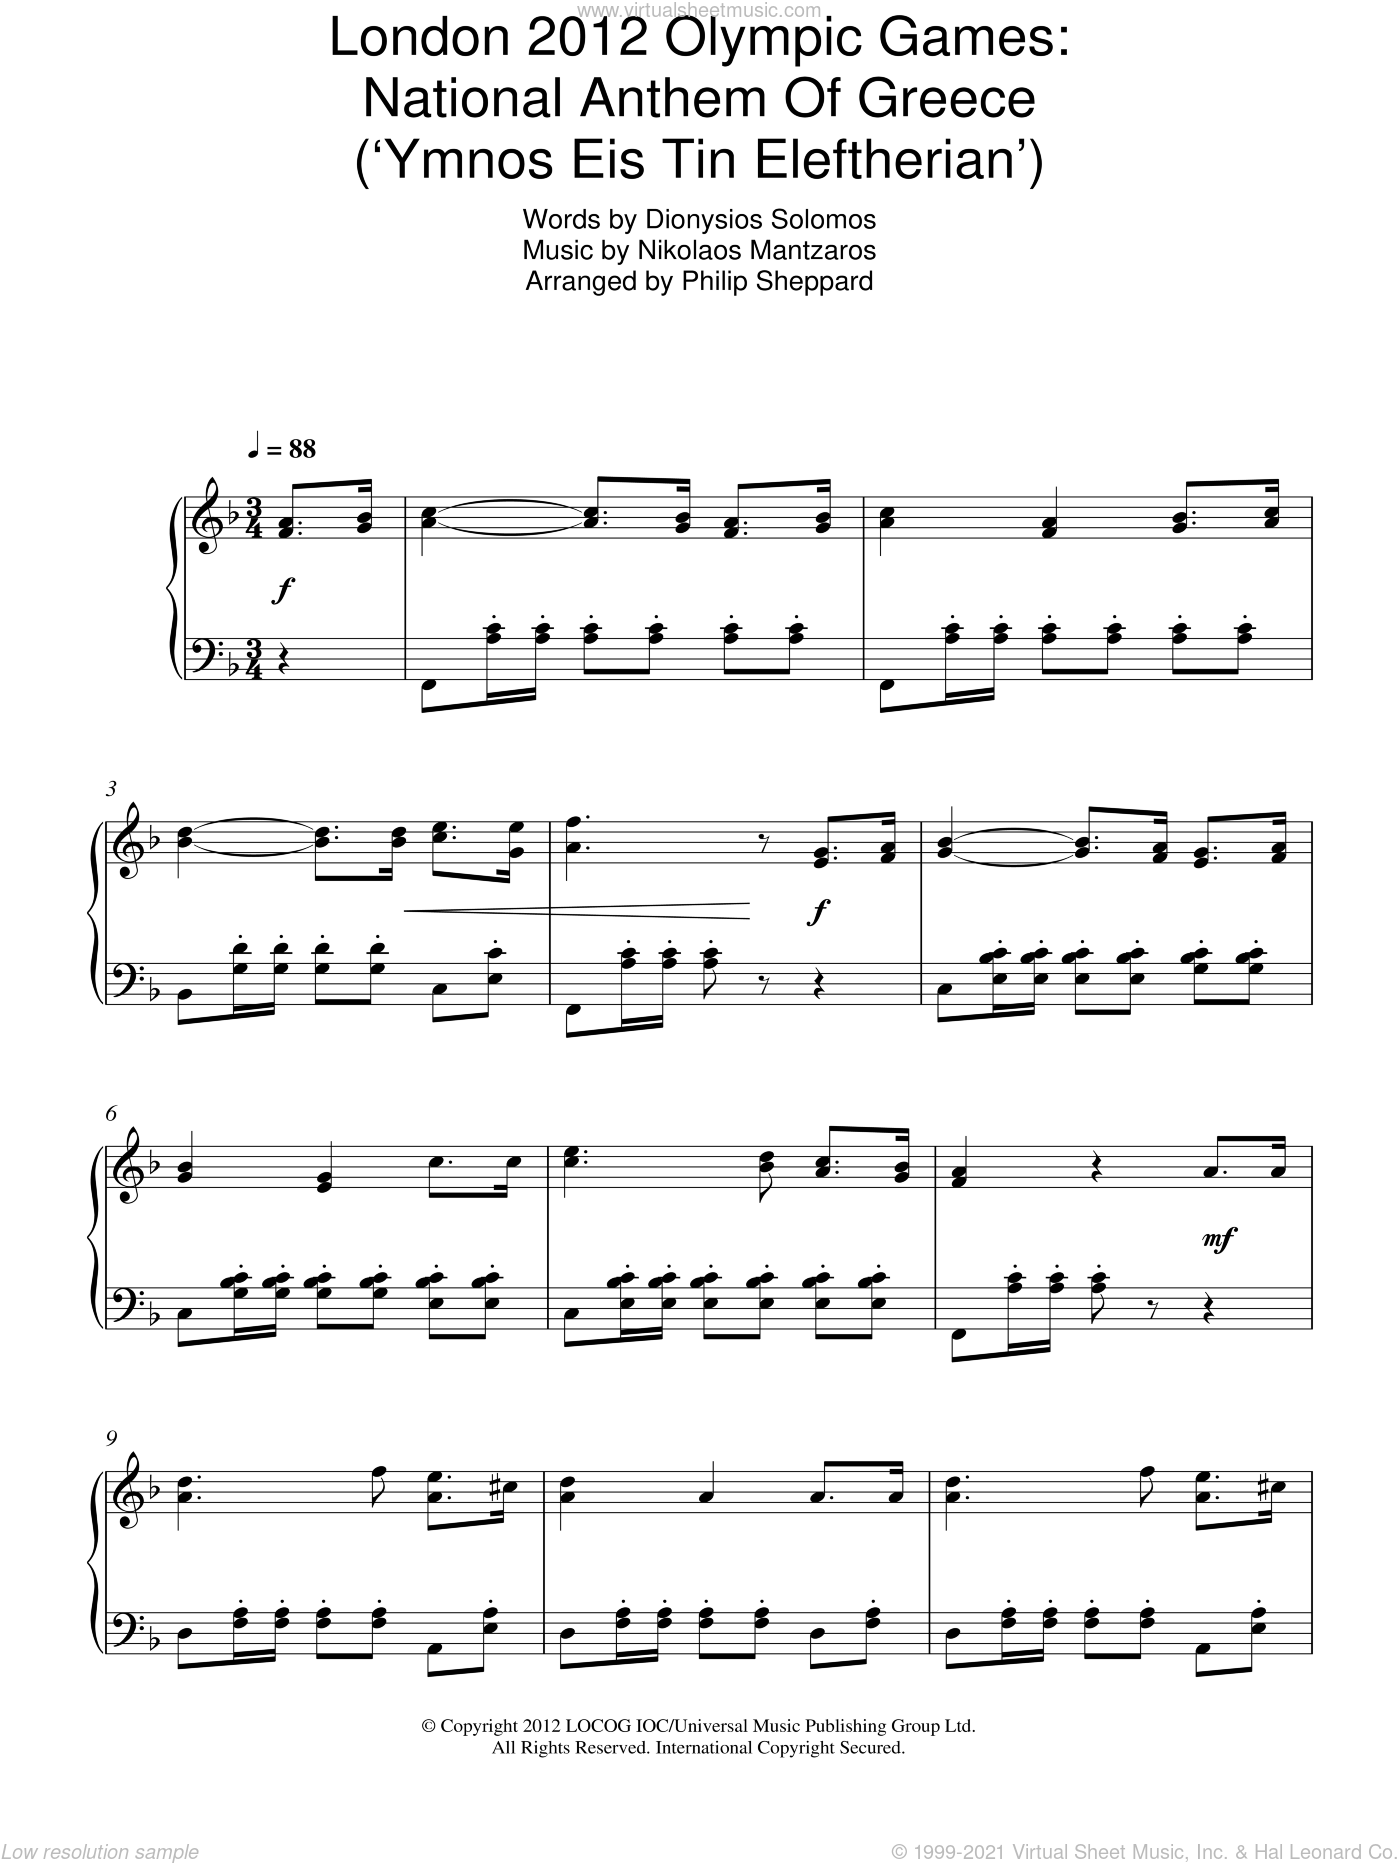 London 2012 Olympic Games: National Anthem Of Greece ('Ymnos Eis Tin Eleftherian') sheet music for piano solo by Philip Sheppard, Dionysios Solomos and Nikolaos Mantzaros, intermediate skill level